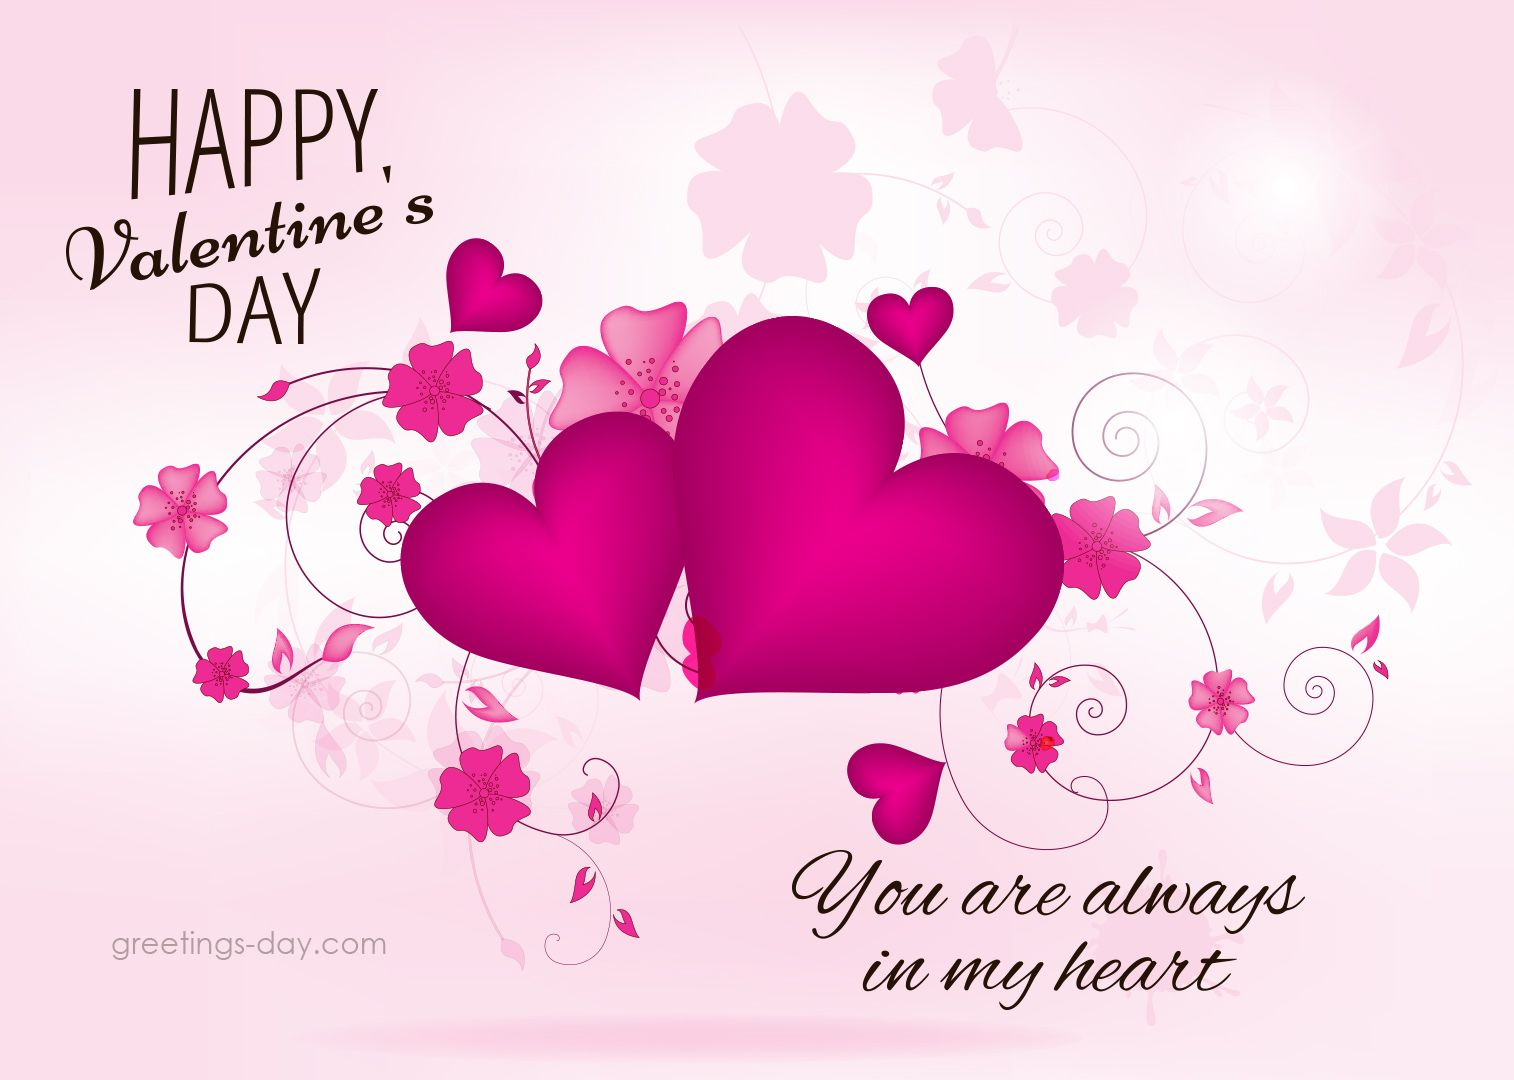 GreetingsPics, #Love, #ValentineSDay http://greetings-day.com/happy ...